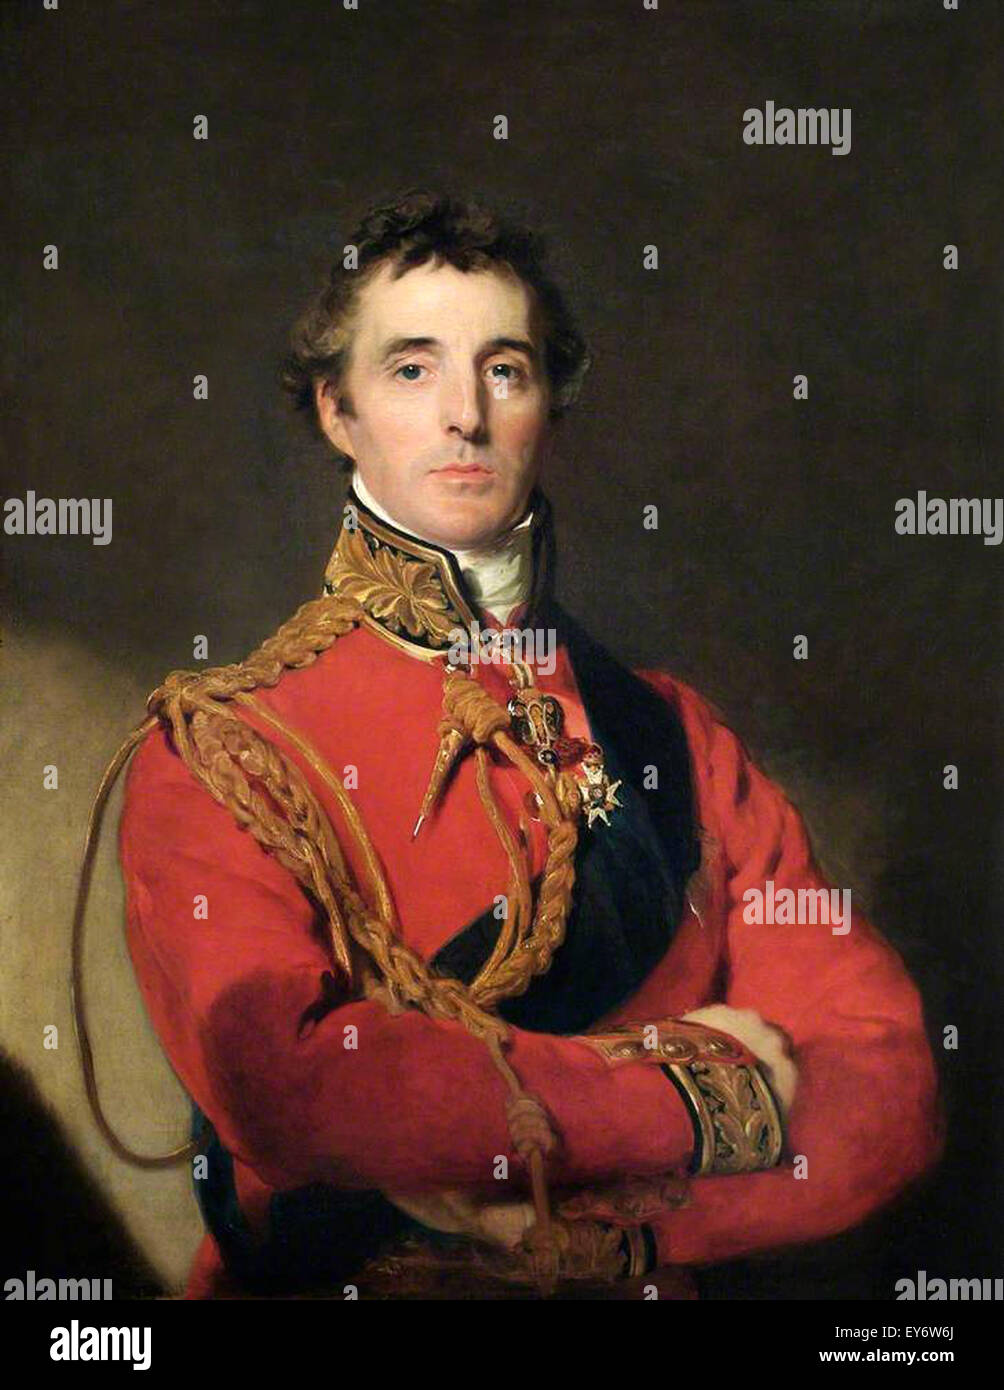 Field Marshal Arthur Wellesley the 1st Duke of Wellington wearing field marshal's uniform. - Stock Image